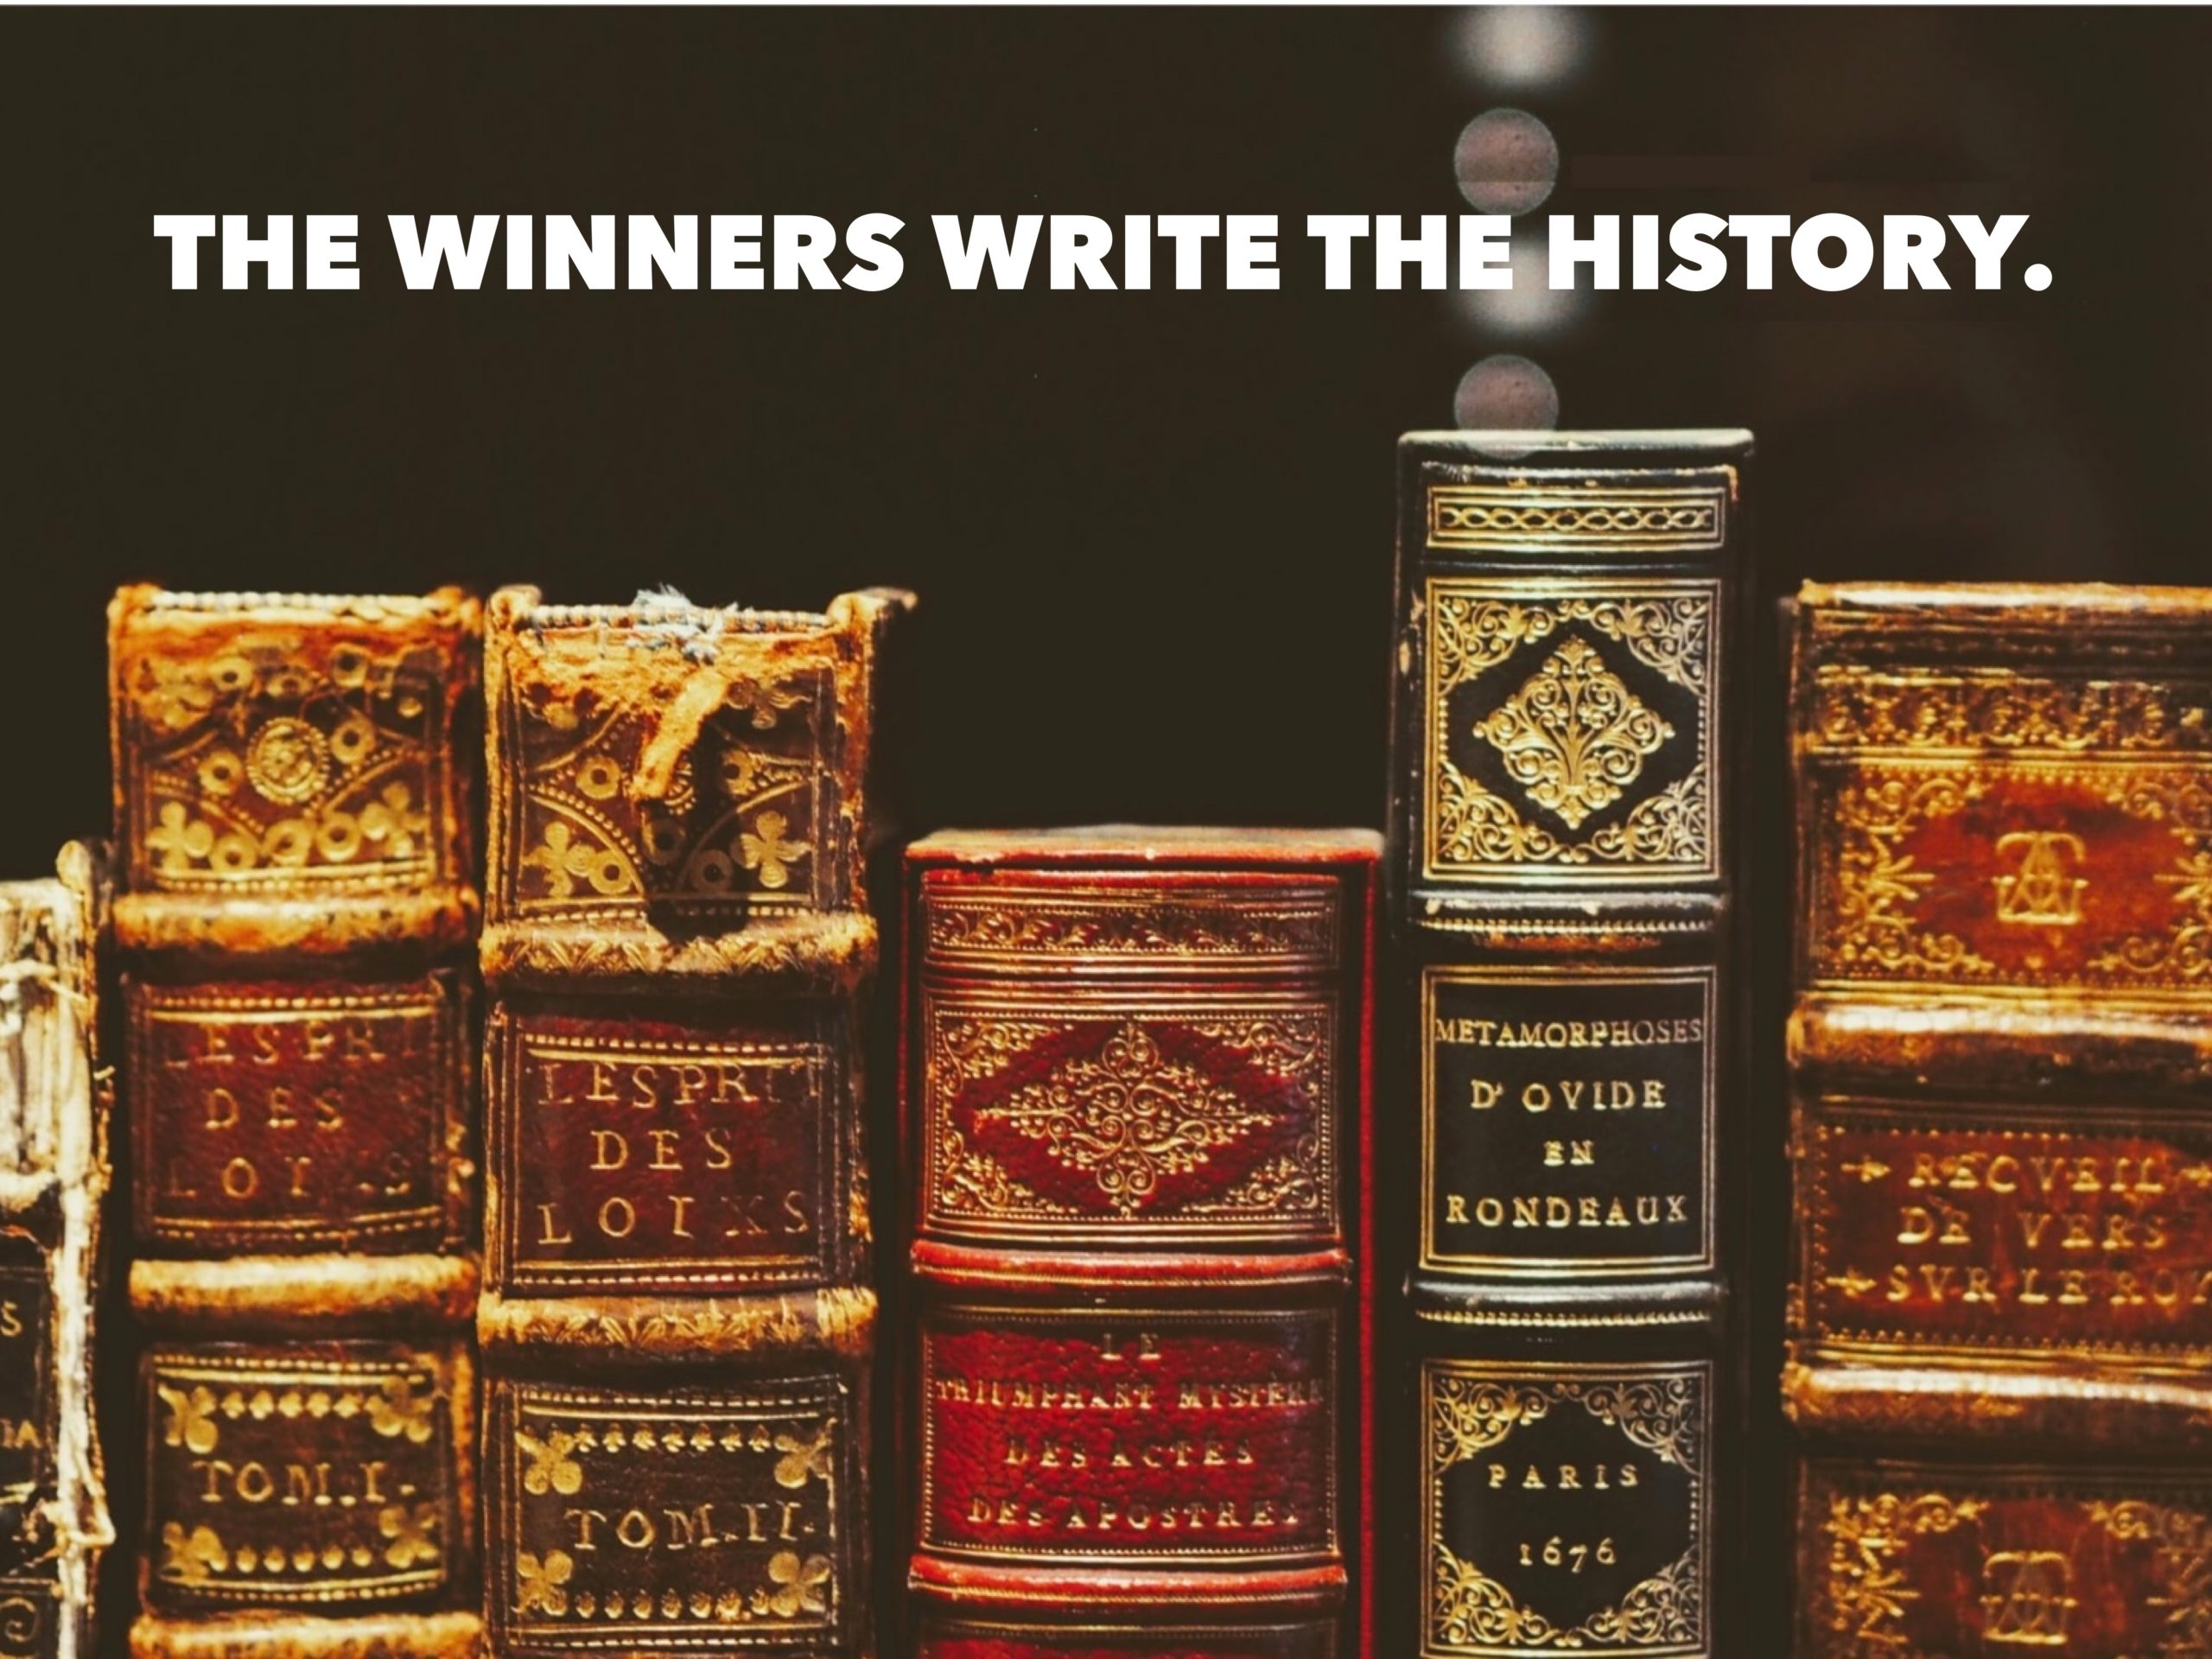 The Winners Write The History